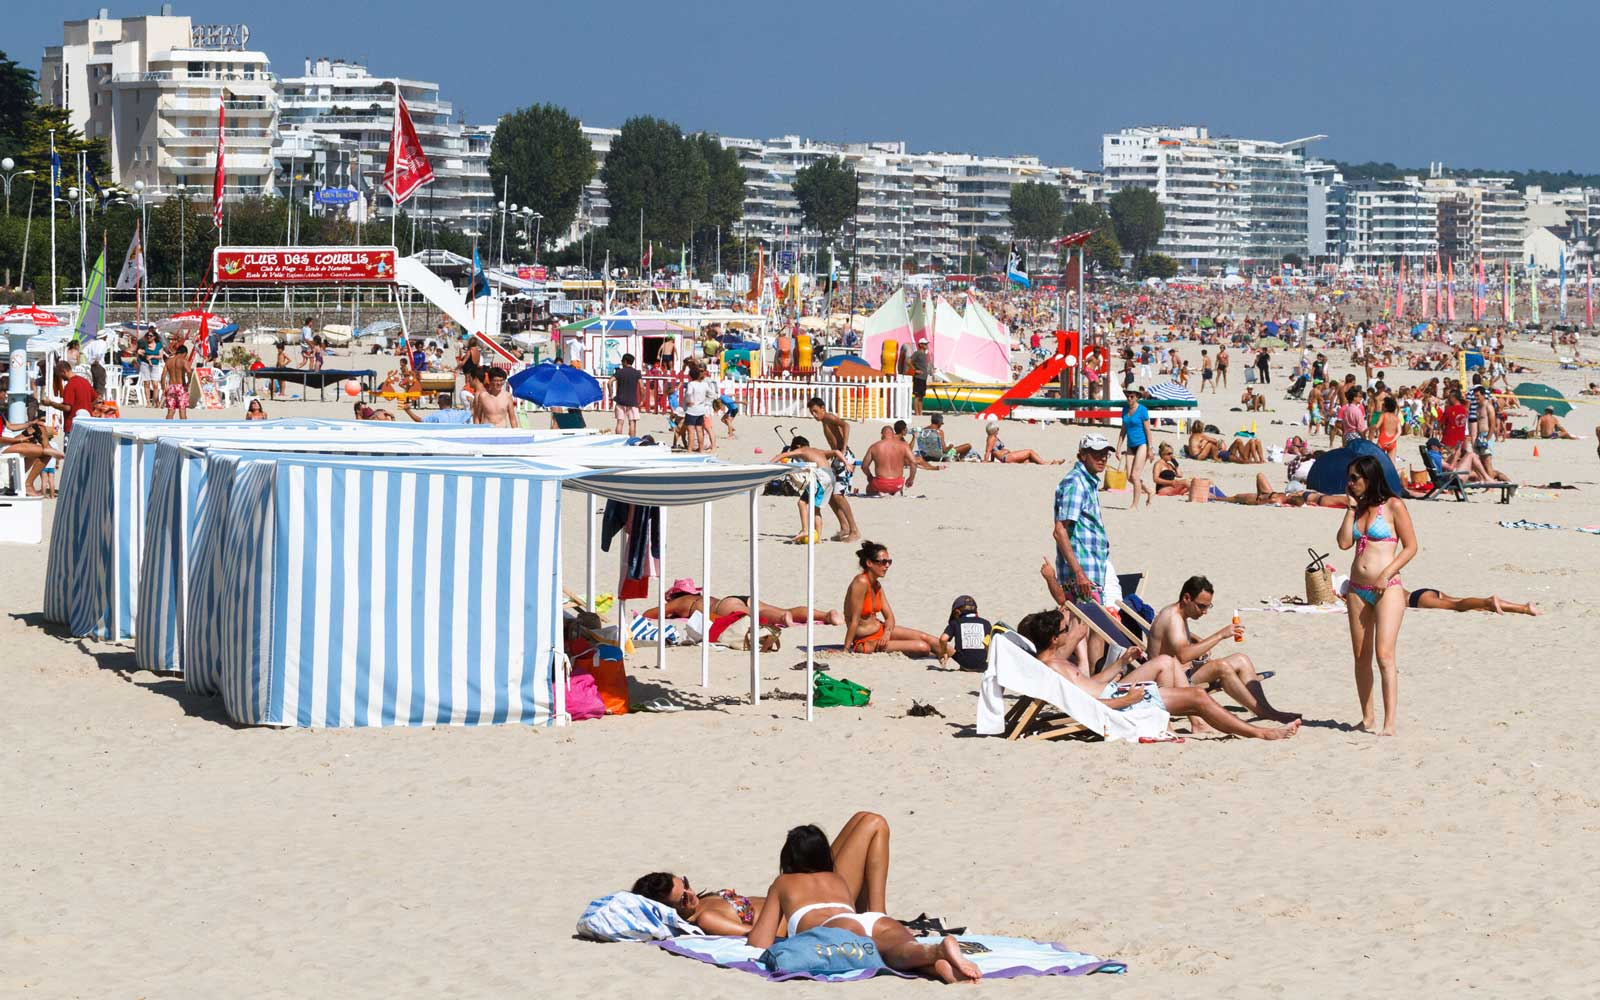 France's most famous beach is being privatized, and the locals are not happy